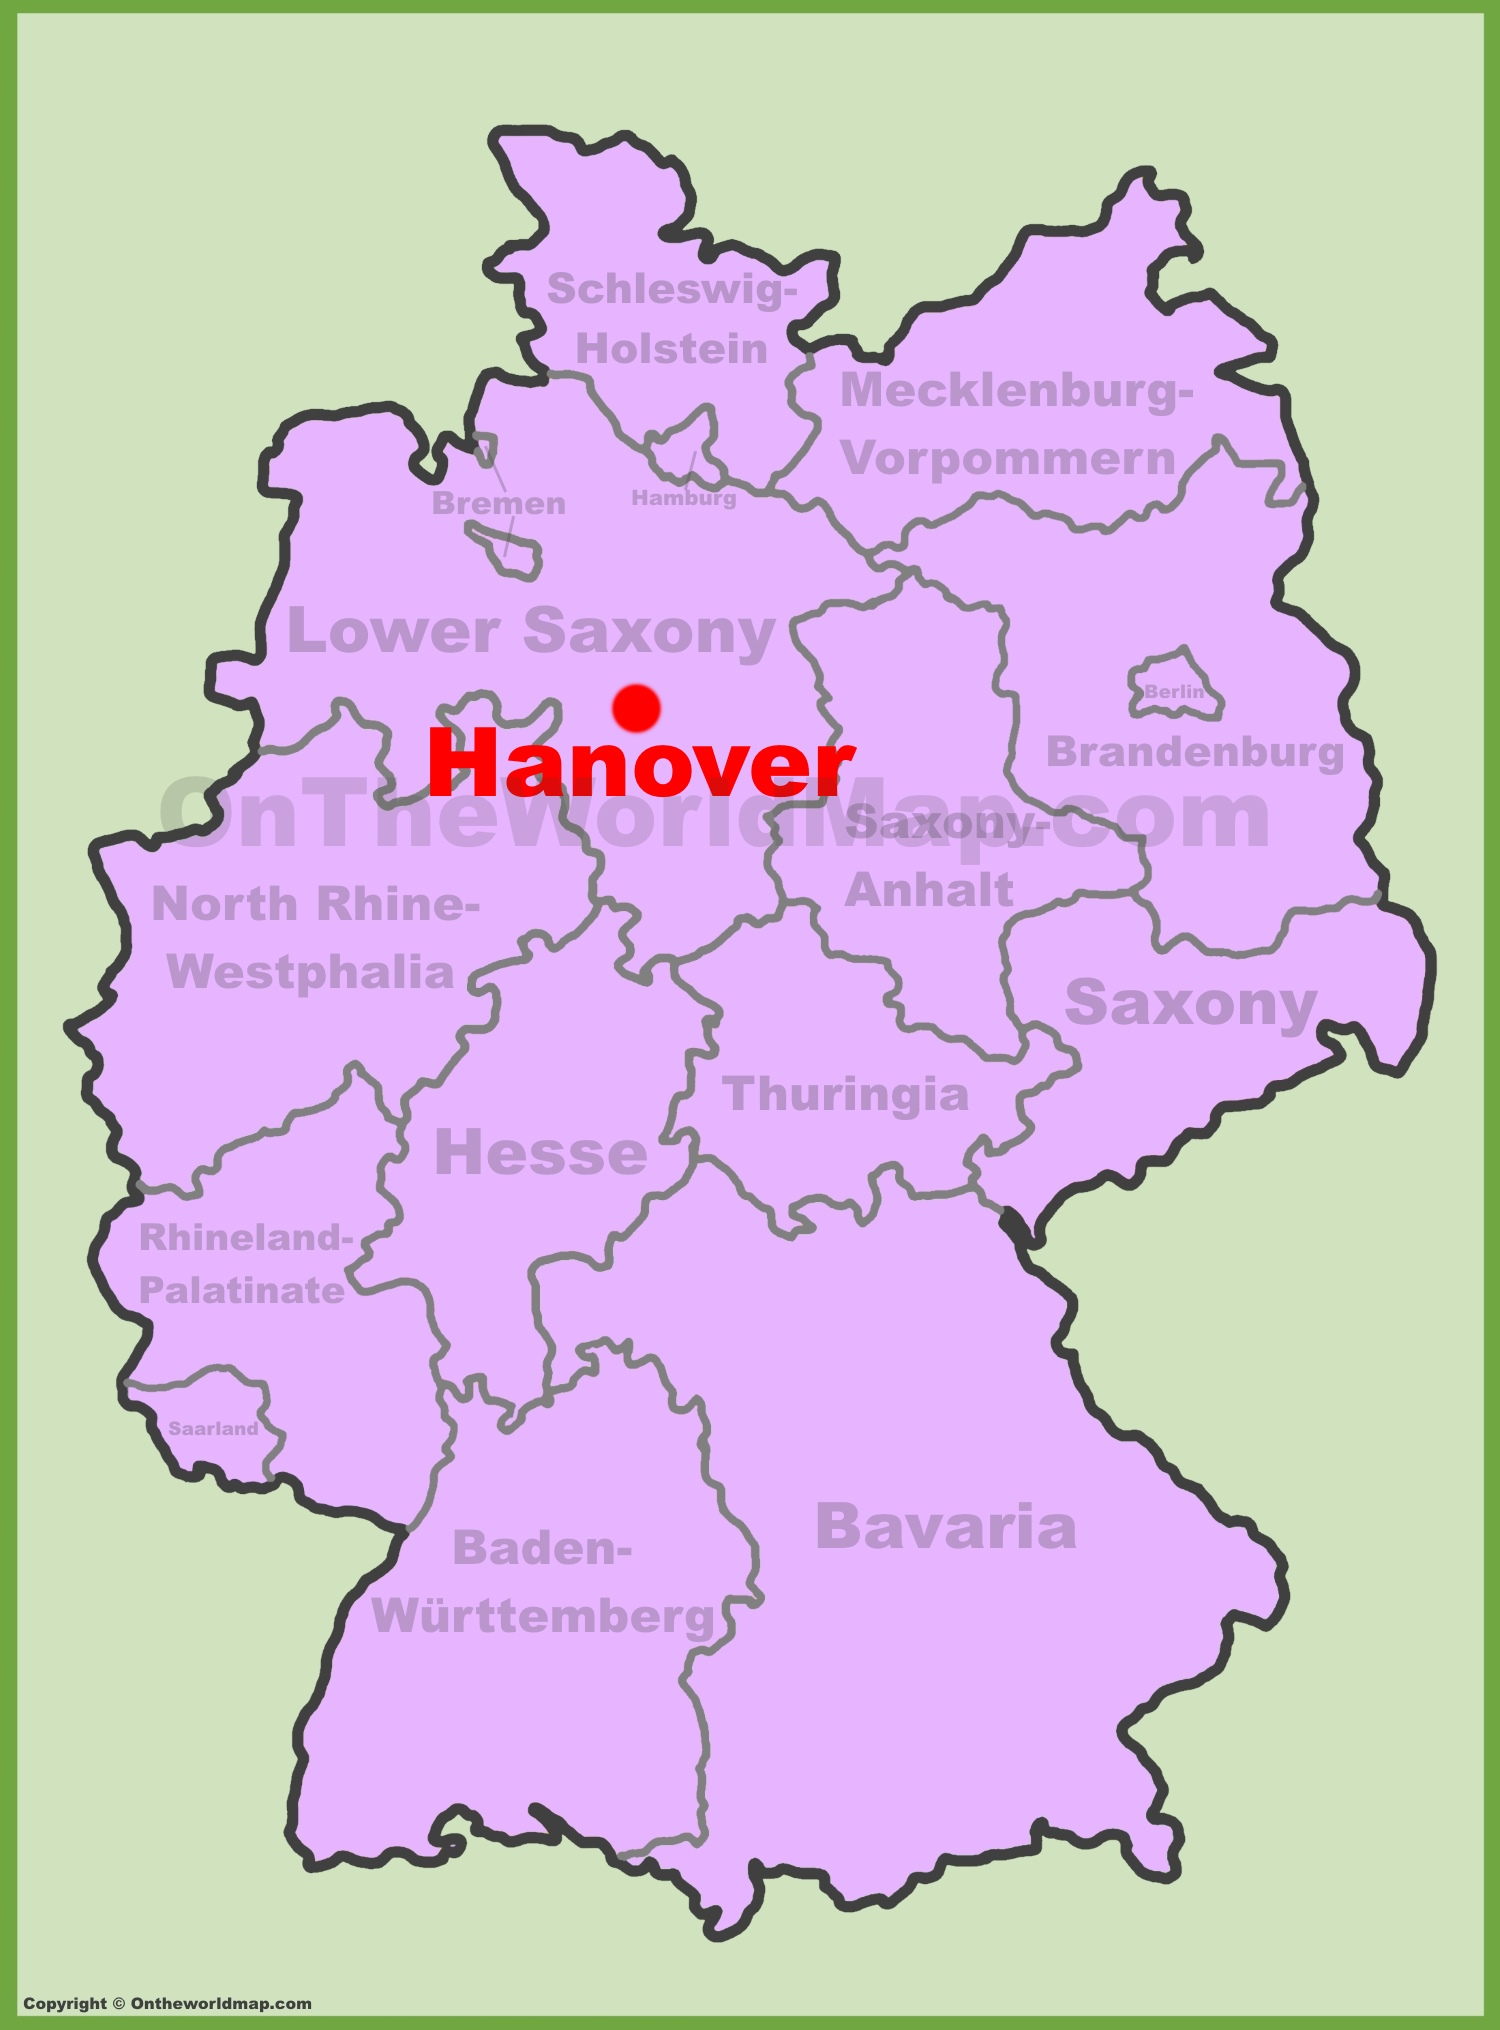 Hannover Maps | Germany | Maps of Hannover (Hanover)